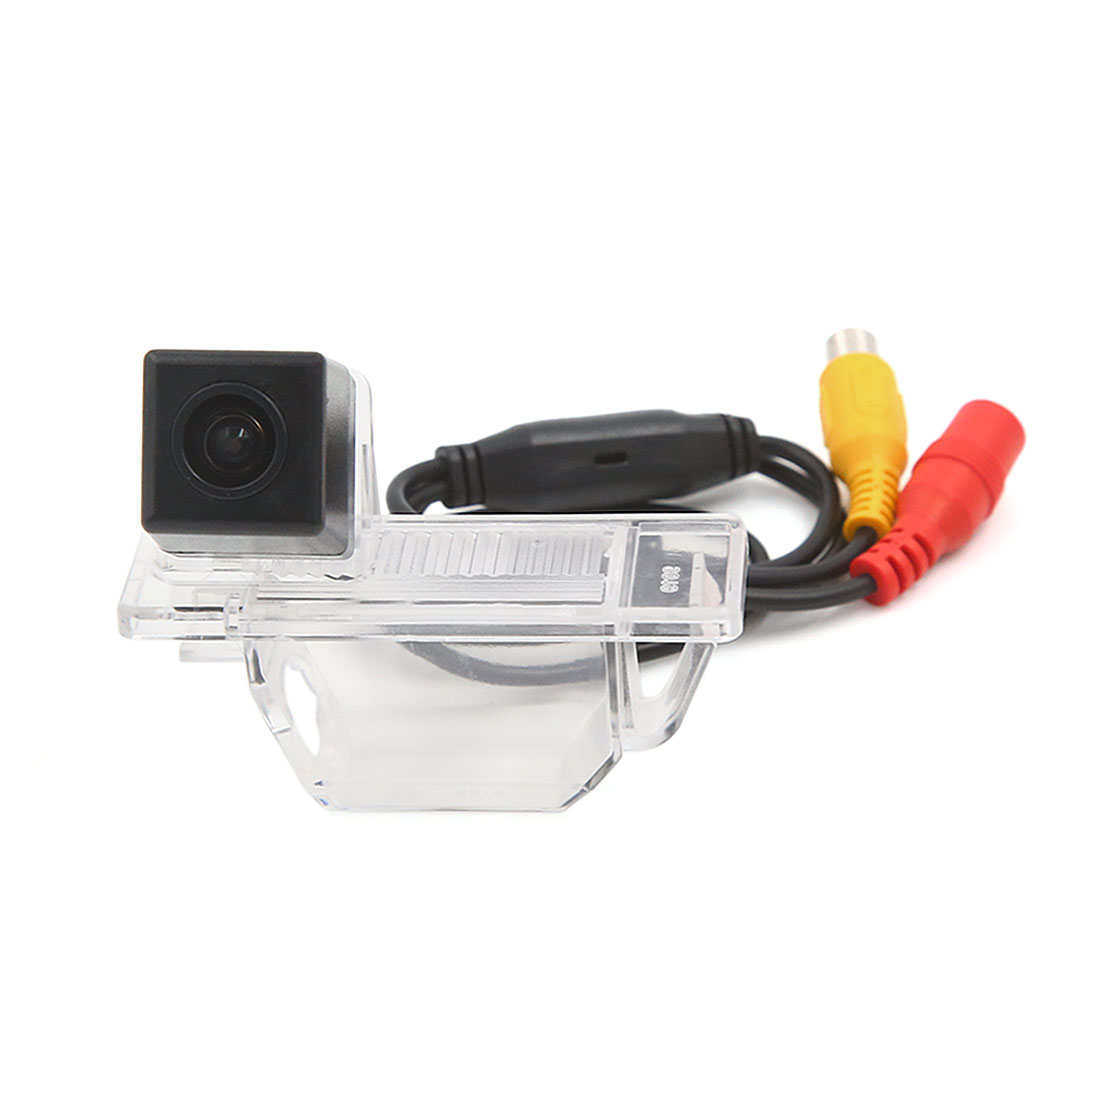 0.01Lux 480 TVL CCD Rear View Reverse Backup Parking Camera for Nissan Qashqai